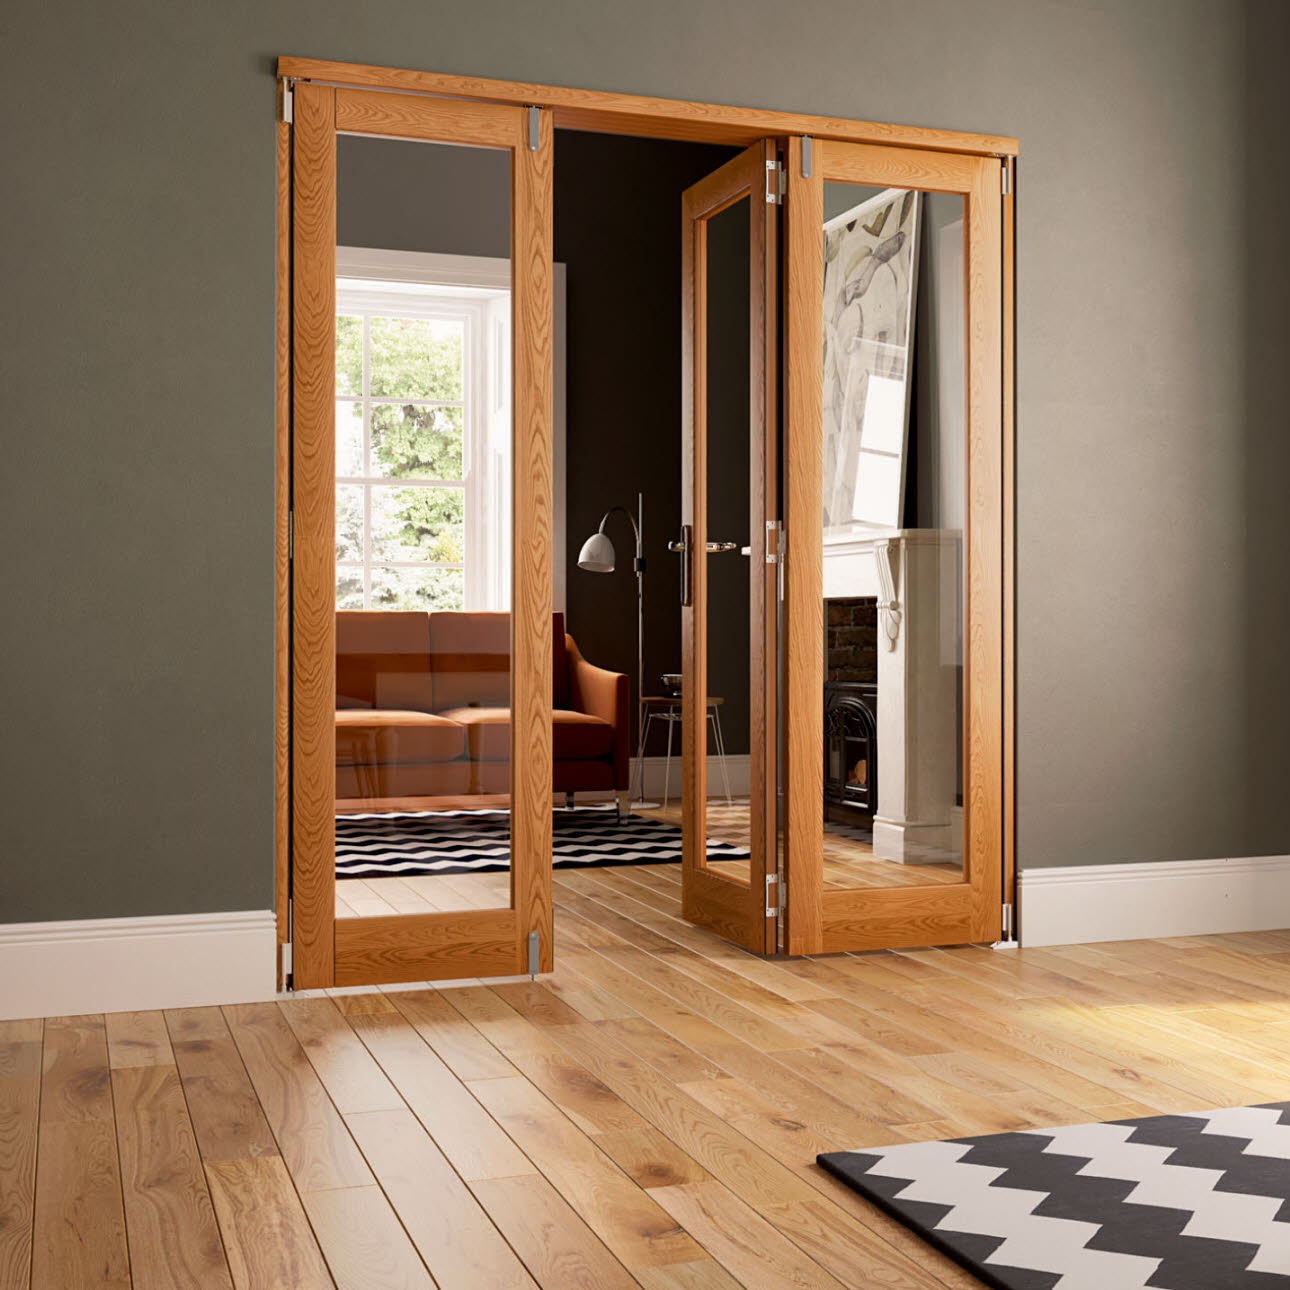 Interna doors internal flush doors sc 1 st travis for Interior folding doors